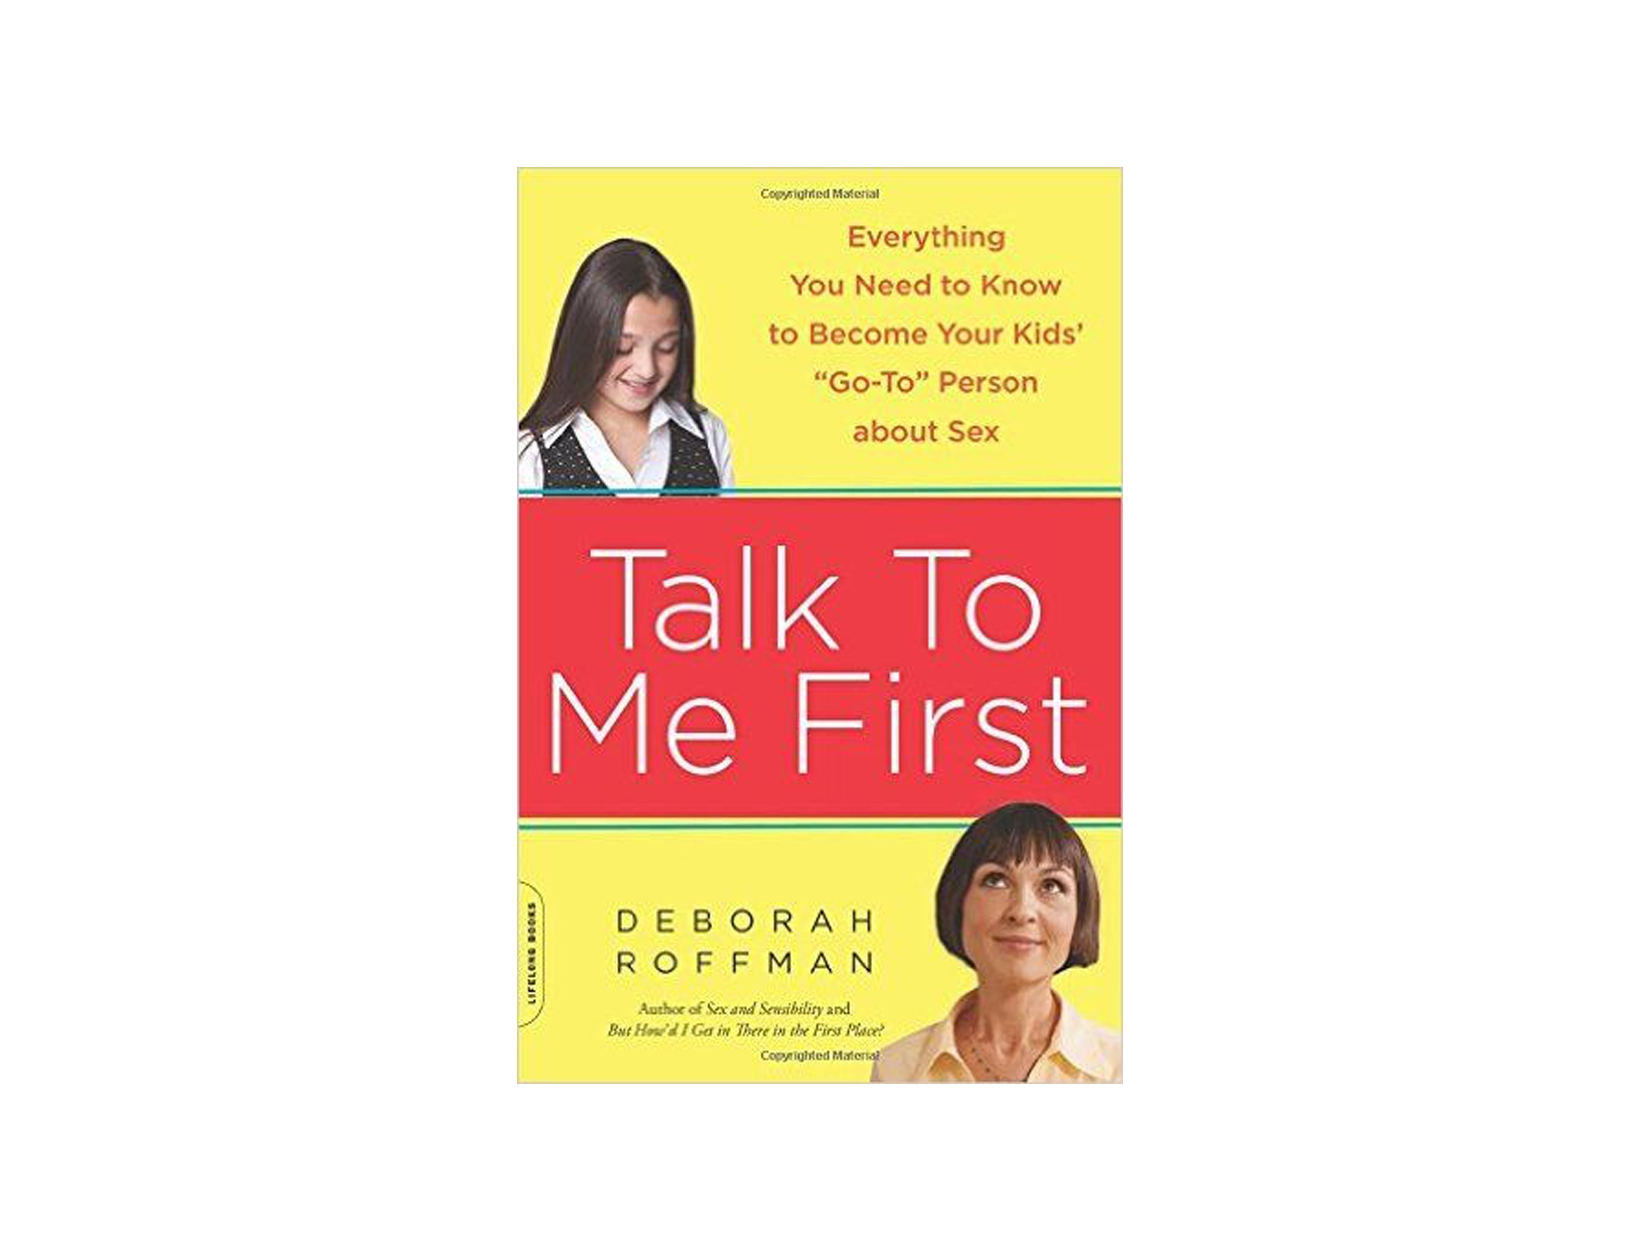 Talk to Me First by Deborah Roffman